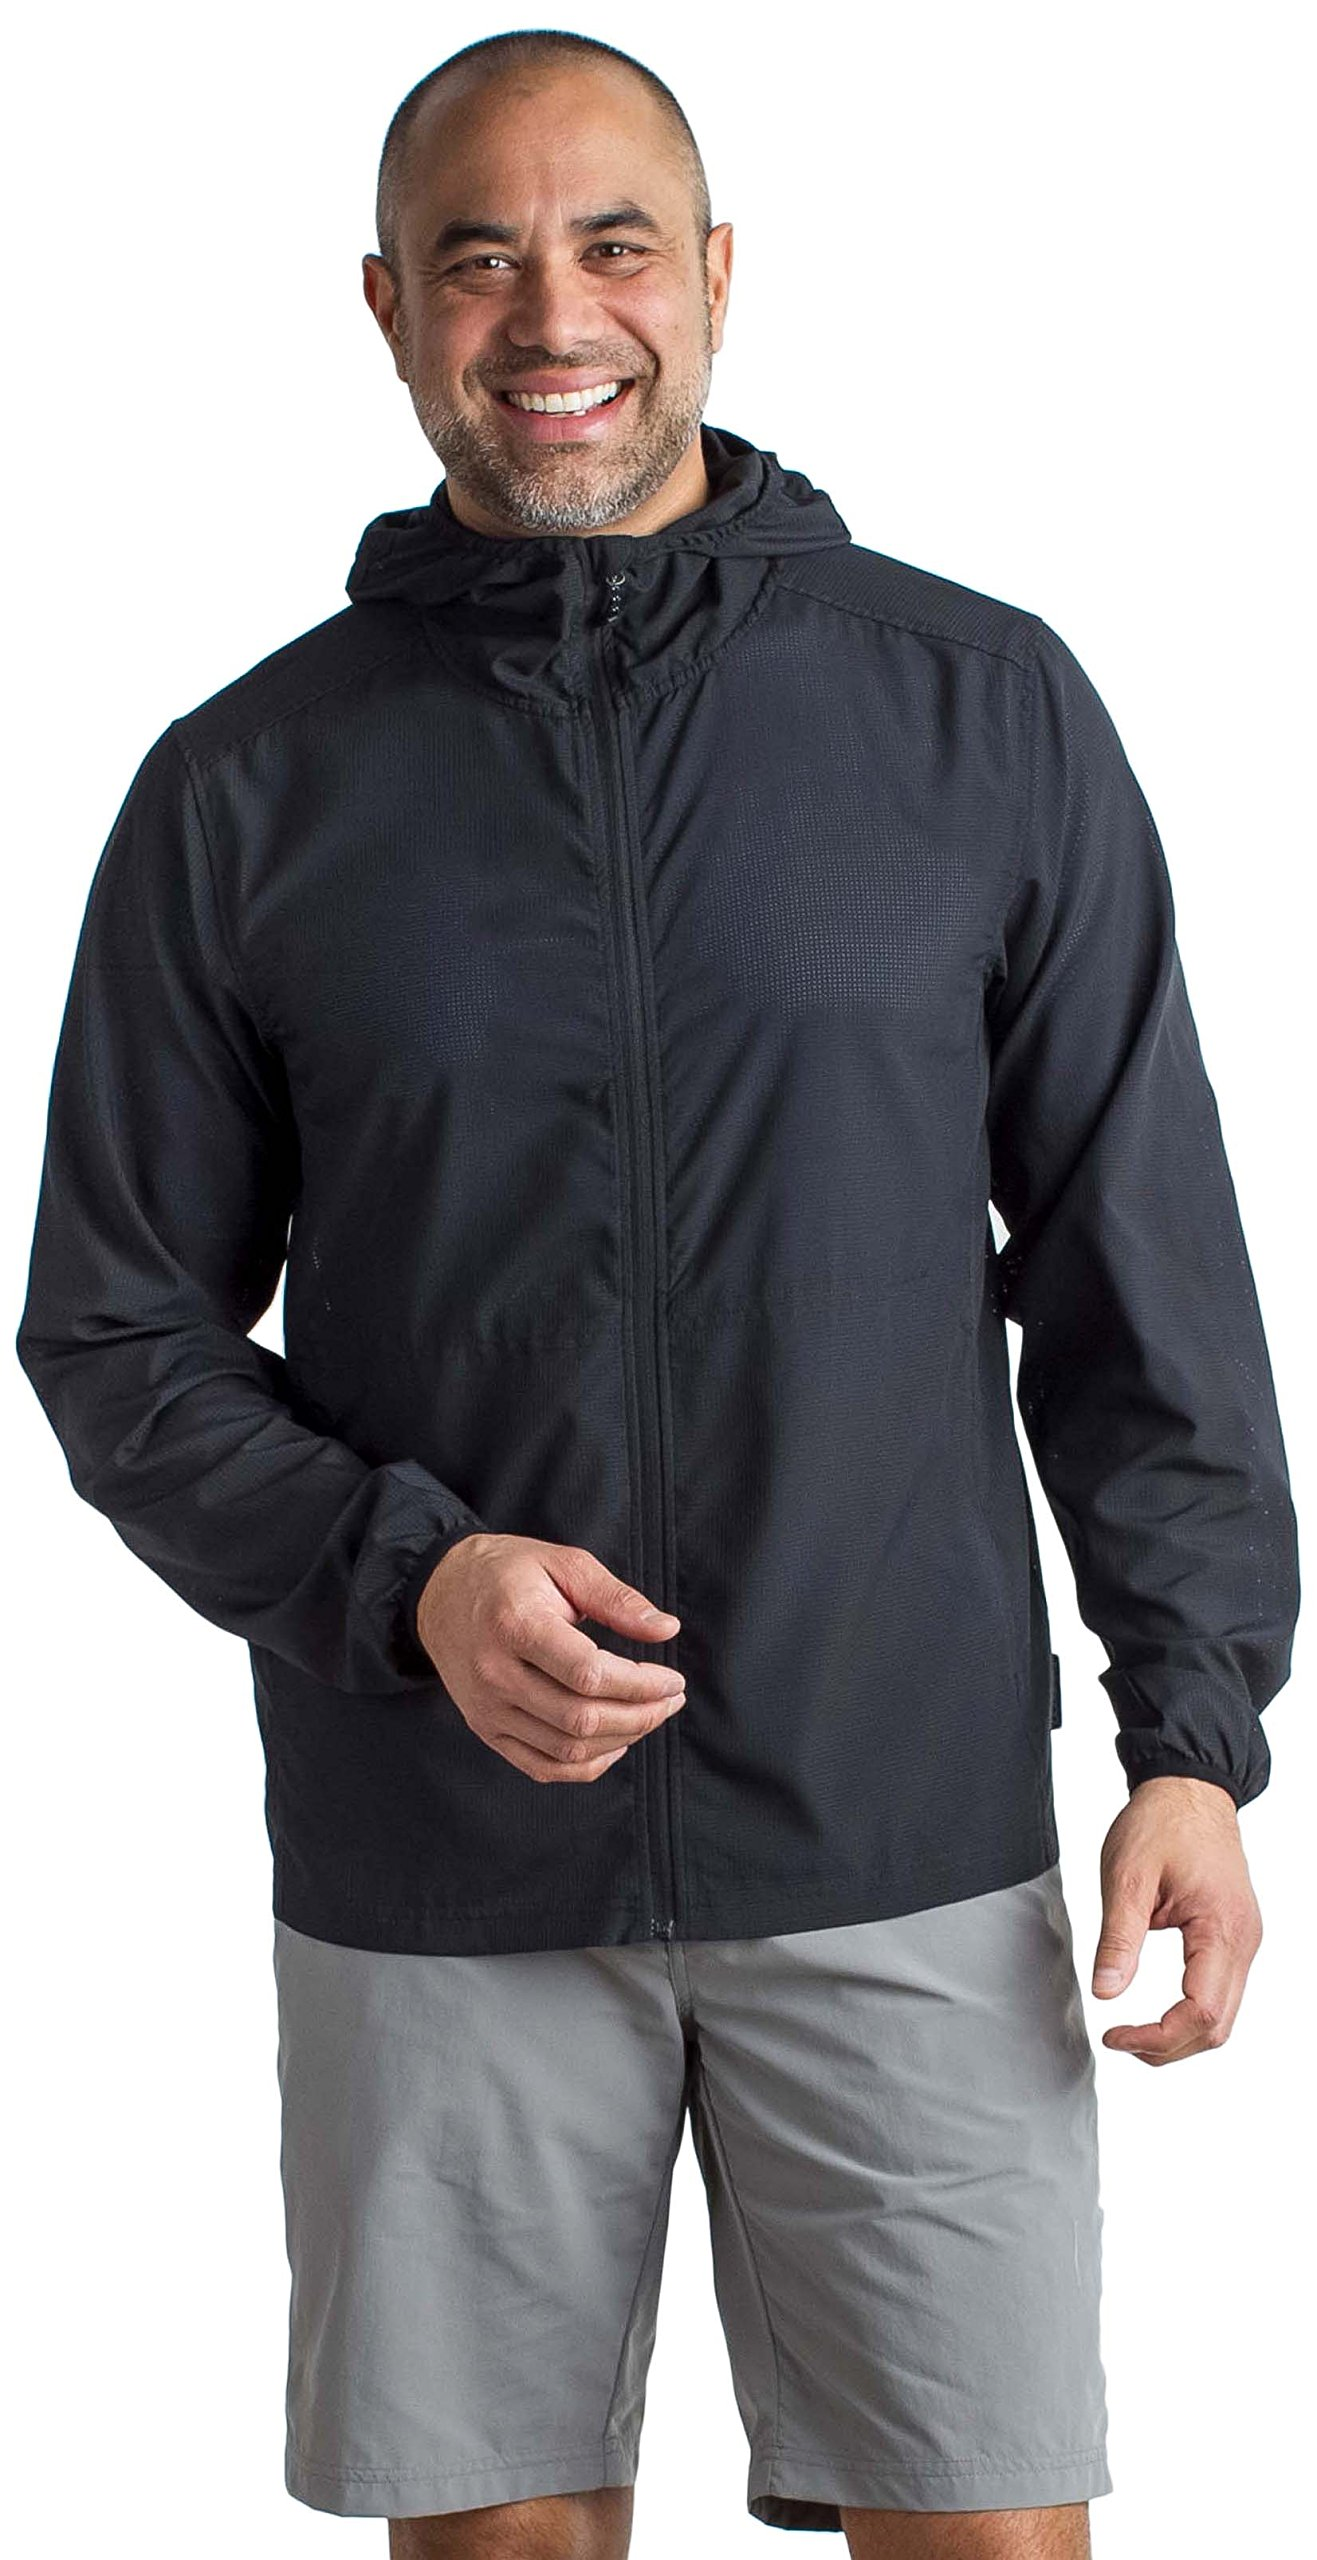 ExOfficio Men's BugsAway Ventana Lightweight Hooded Jacket, Black, Medium by ExOfficio